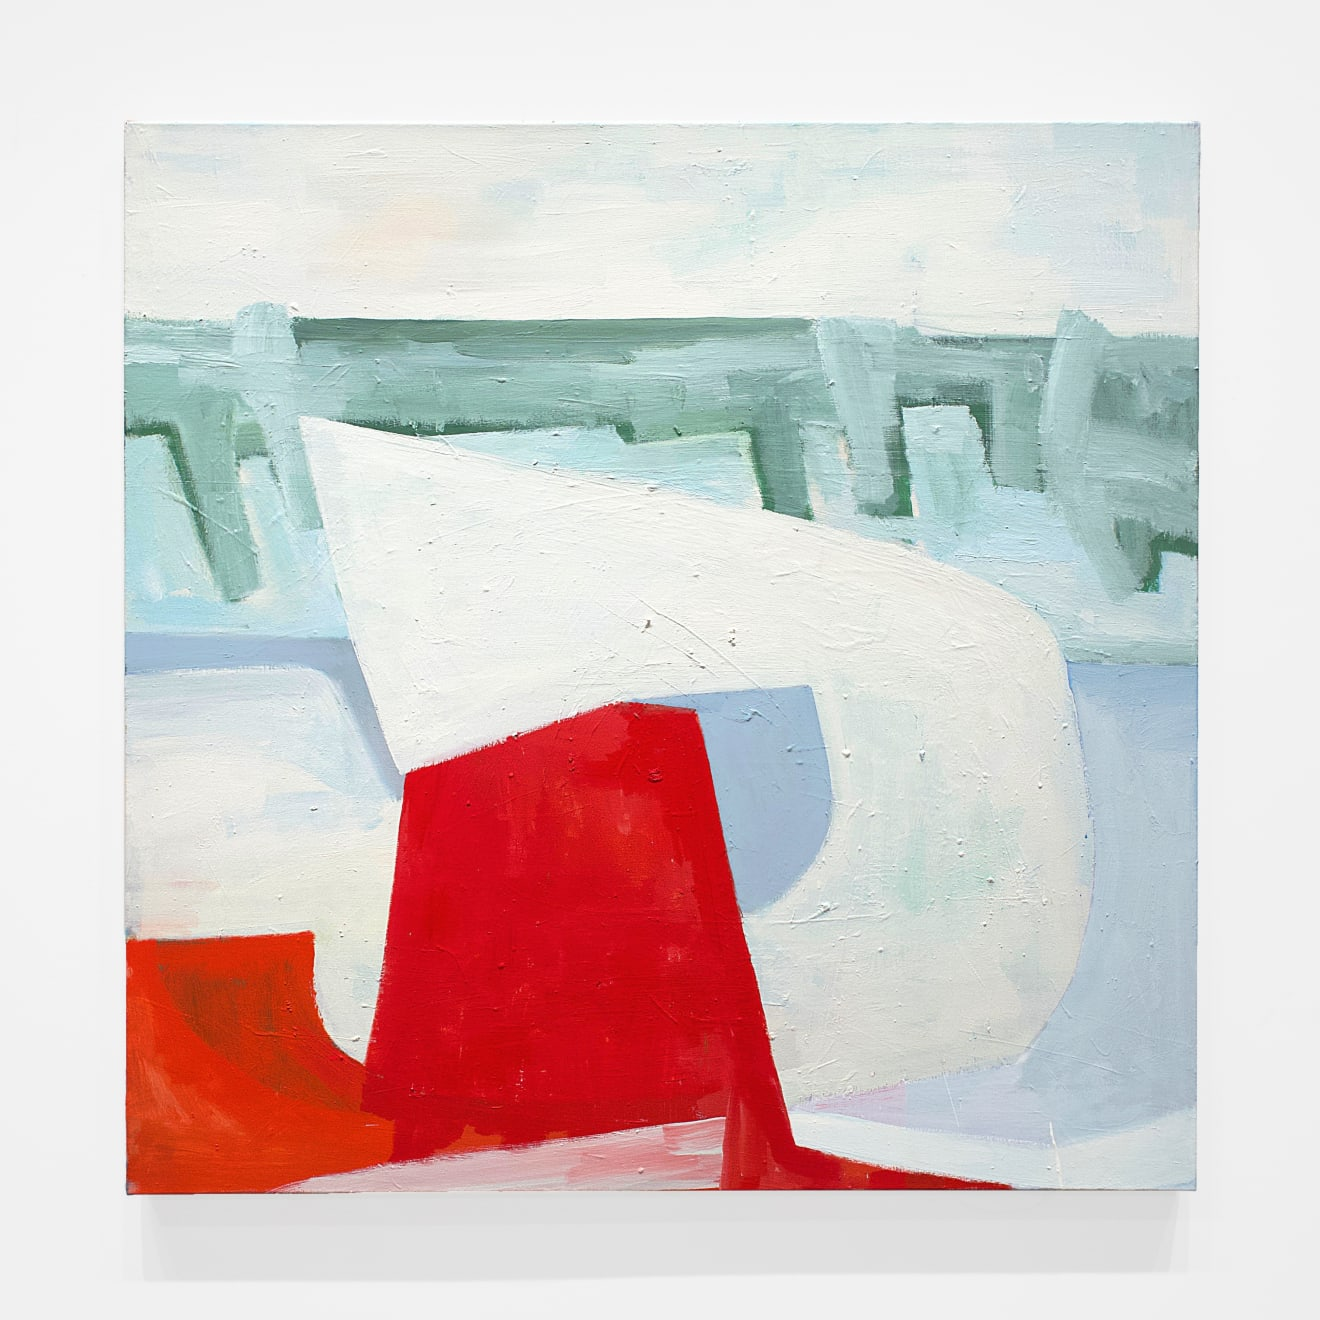 Maria Merrill chooses: David Aylsworth, Night Water, 2017 I love this piece. It just makes me happy. The fabulous red form in contrast to the ice blue, green and white. The suggestion of landscape, the playfulness, the space, forms and shapes give me a feeling of joy, of movement, the embrace of something good. (And the fact that the painting is square and large makes it that much better. How can one resist the wonderful marks, and textures of David swooshing his brush around?) David Aylsworth Night Water, 2017 oil on canvas 48 x 48 in (121.9 x 121.9 cm) DA 683 $10,000